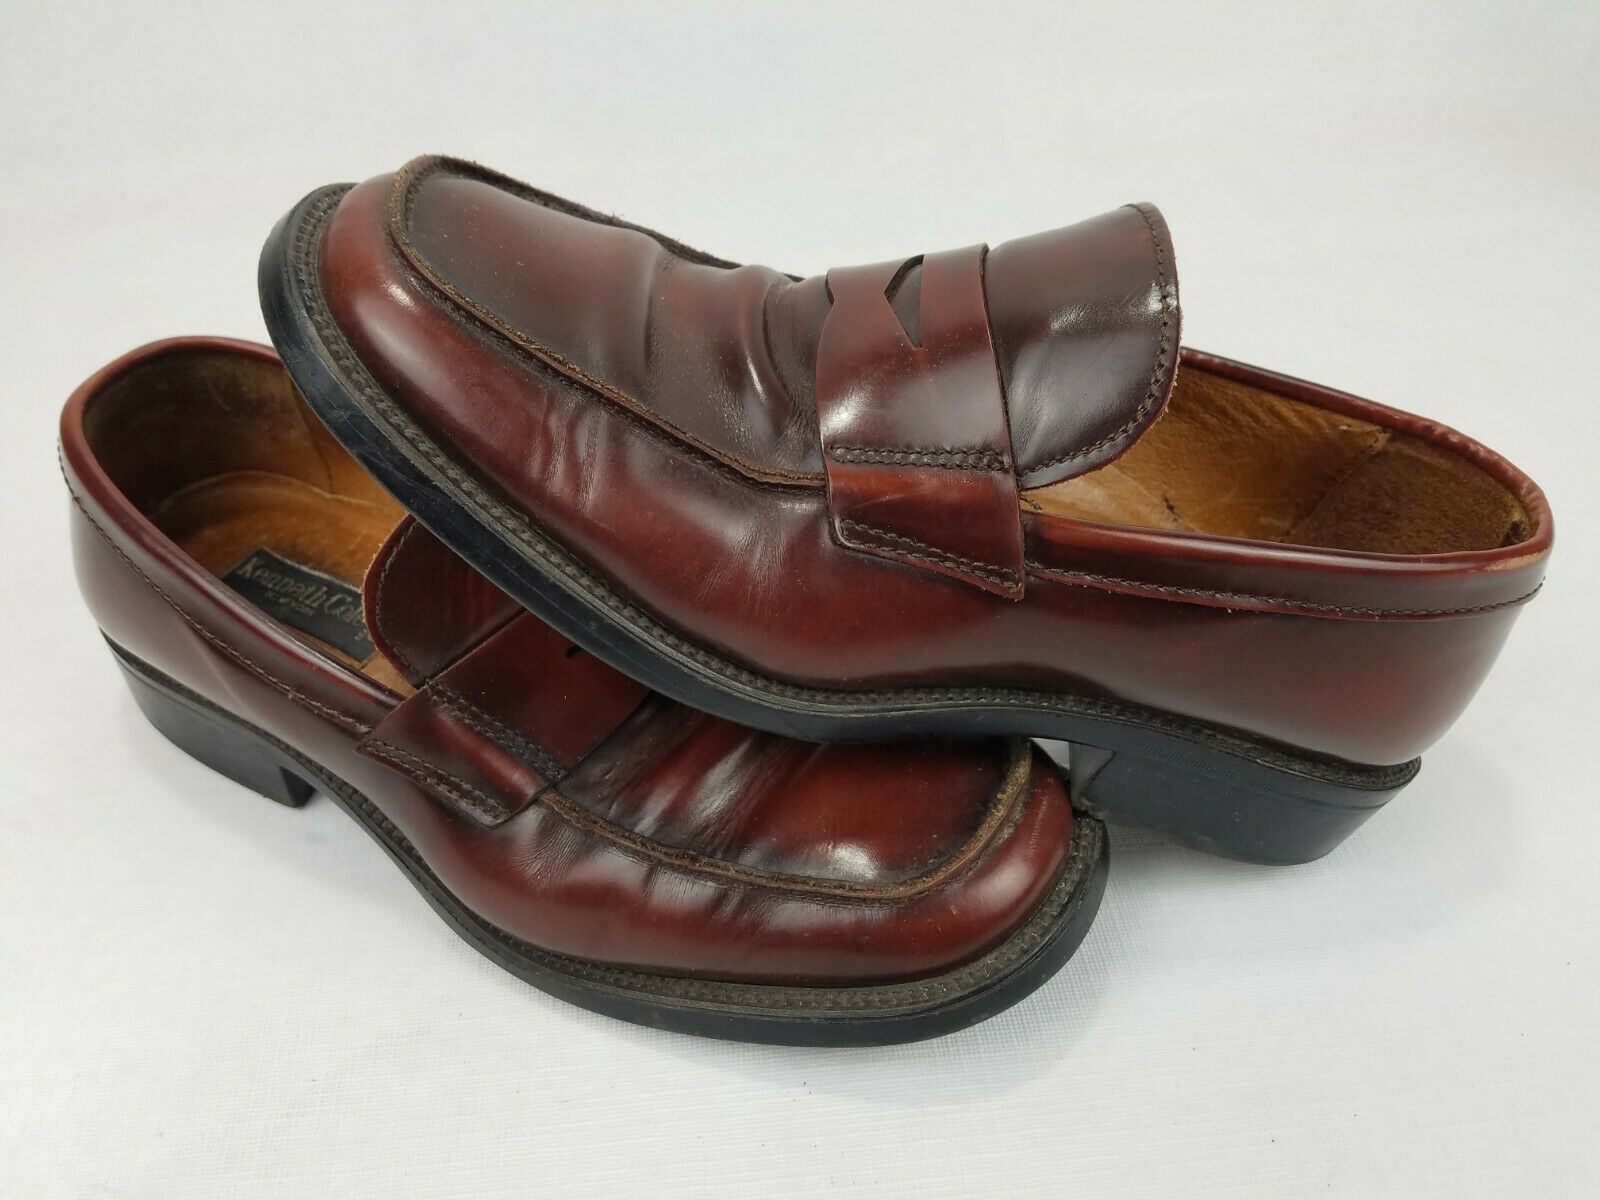 Kenneth Cole New York Dress Loafers Slip On Shoes Brown Leather Italy Mens Sz 8